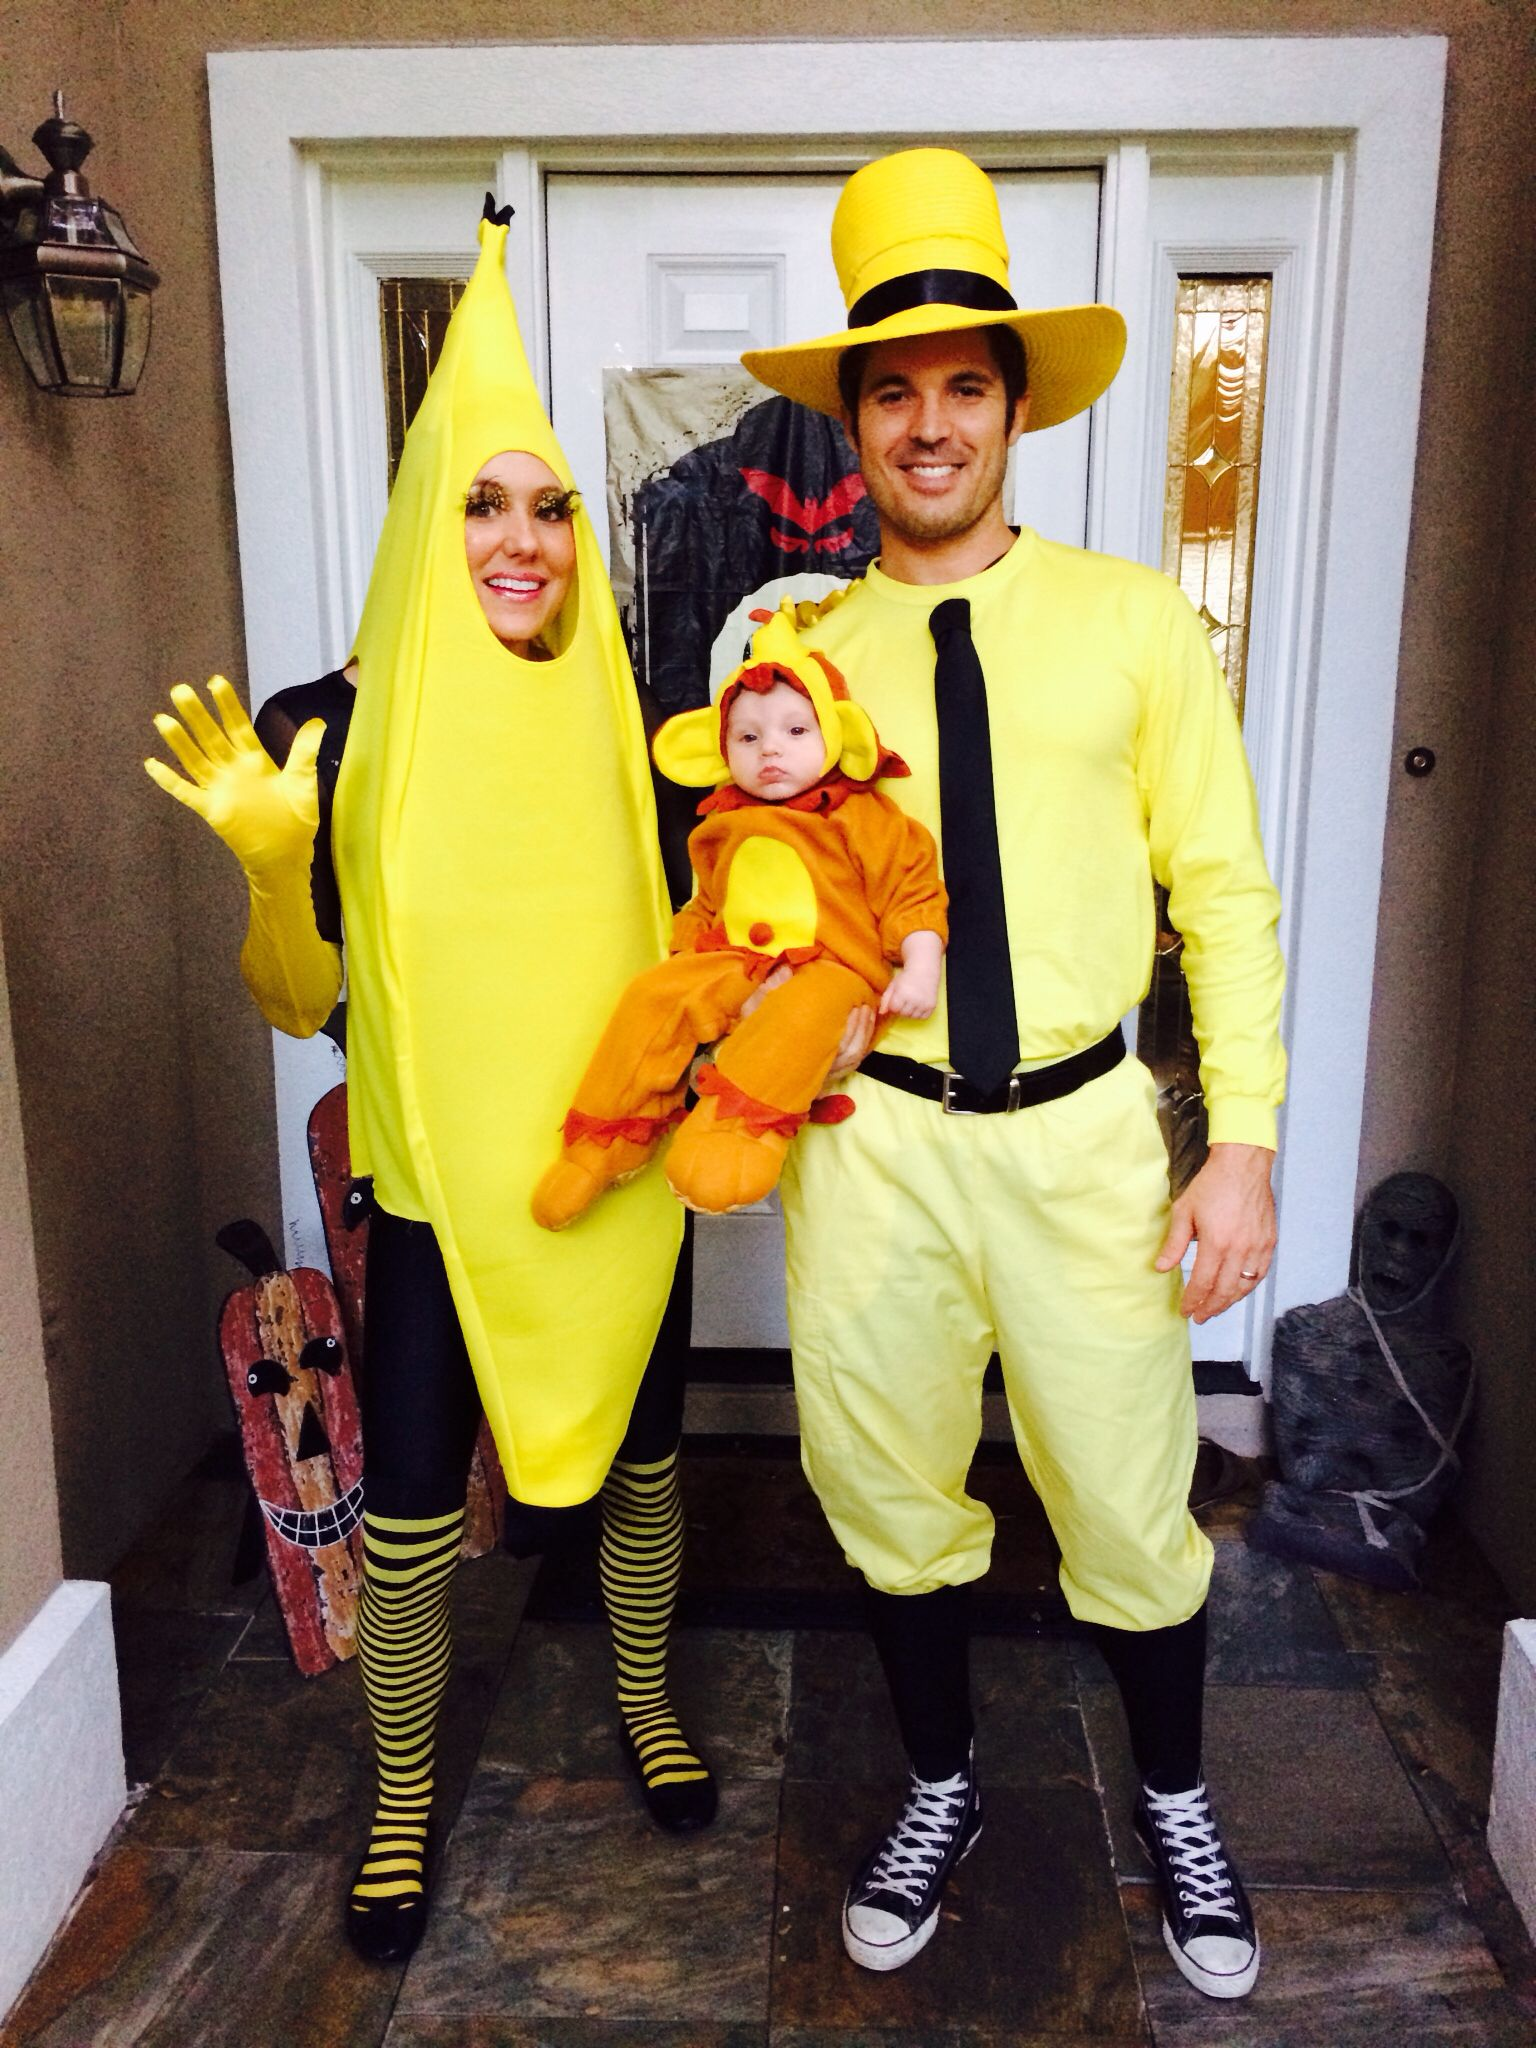 family of three halloween costume idea curious george inspirationlove this super cute and what a cute monkey